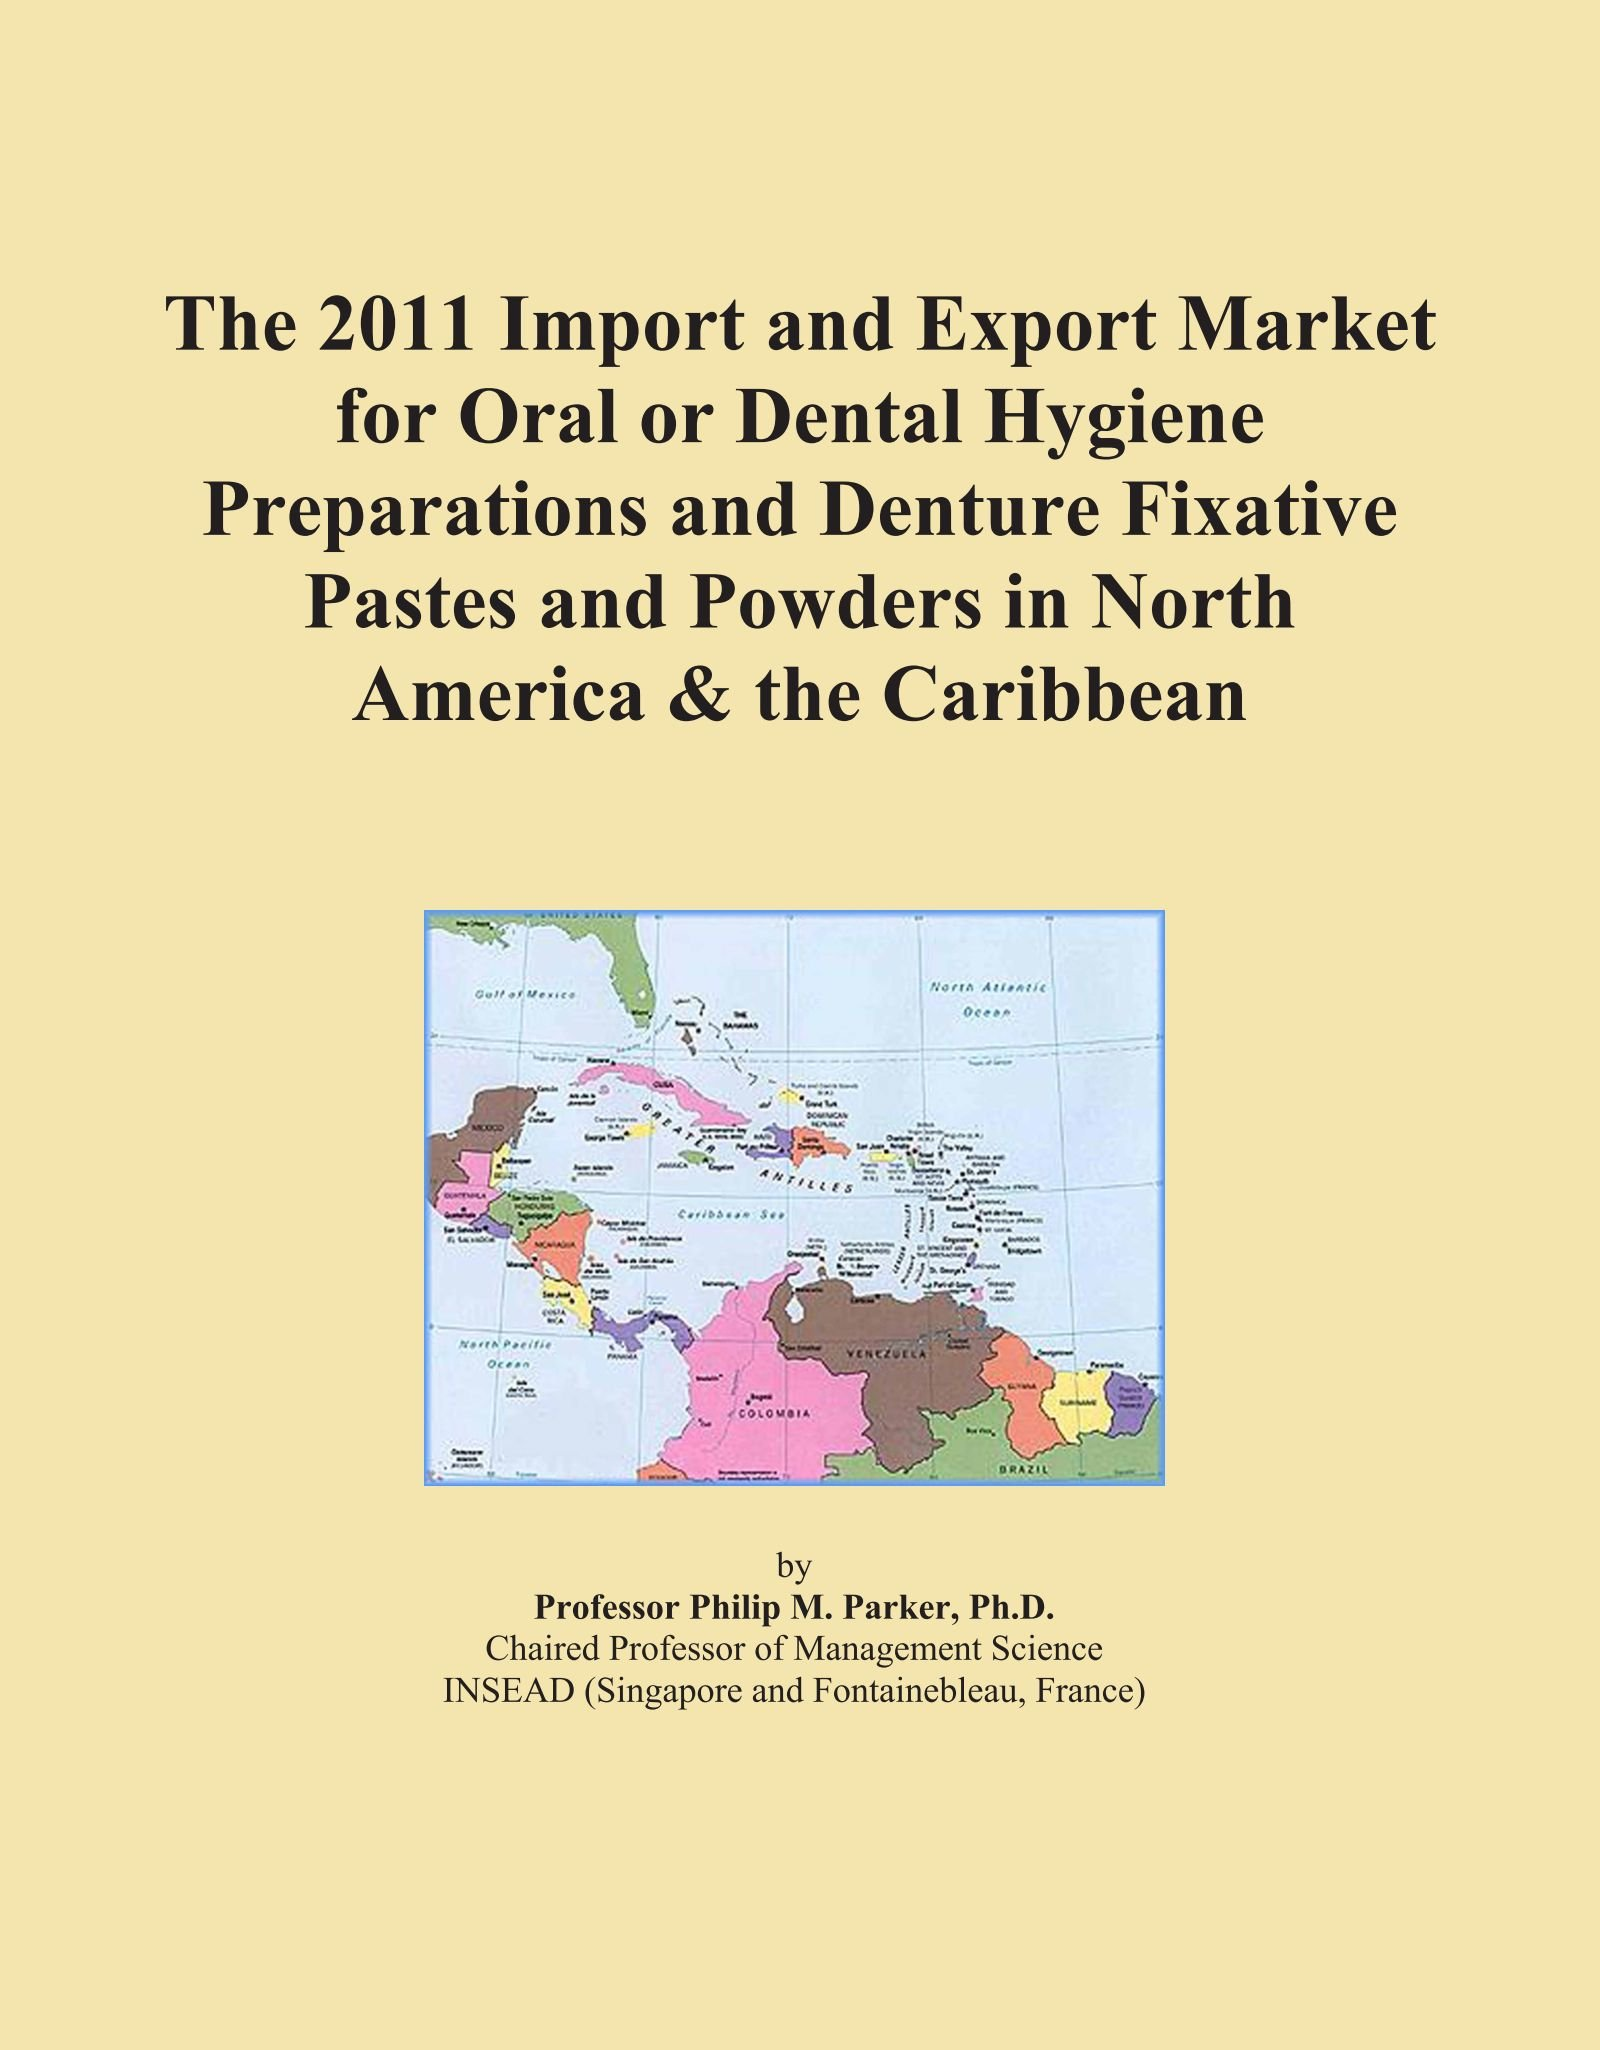 The 2011 Import and Export Market for Oral or Dental Hygiene Preparations and Denture Fixative Pastes and Powders in North America & the Caribbean